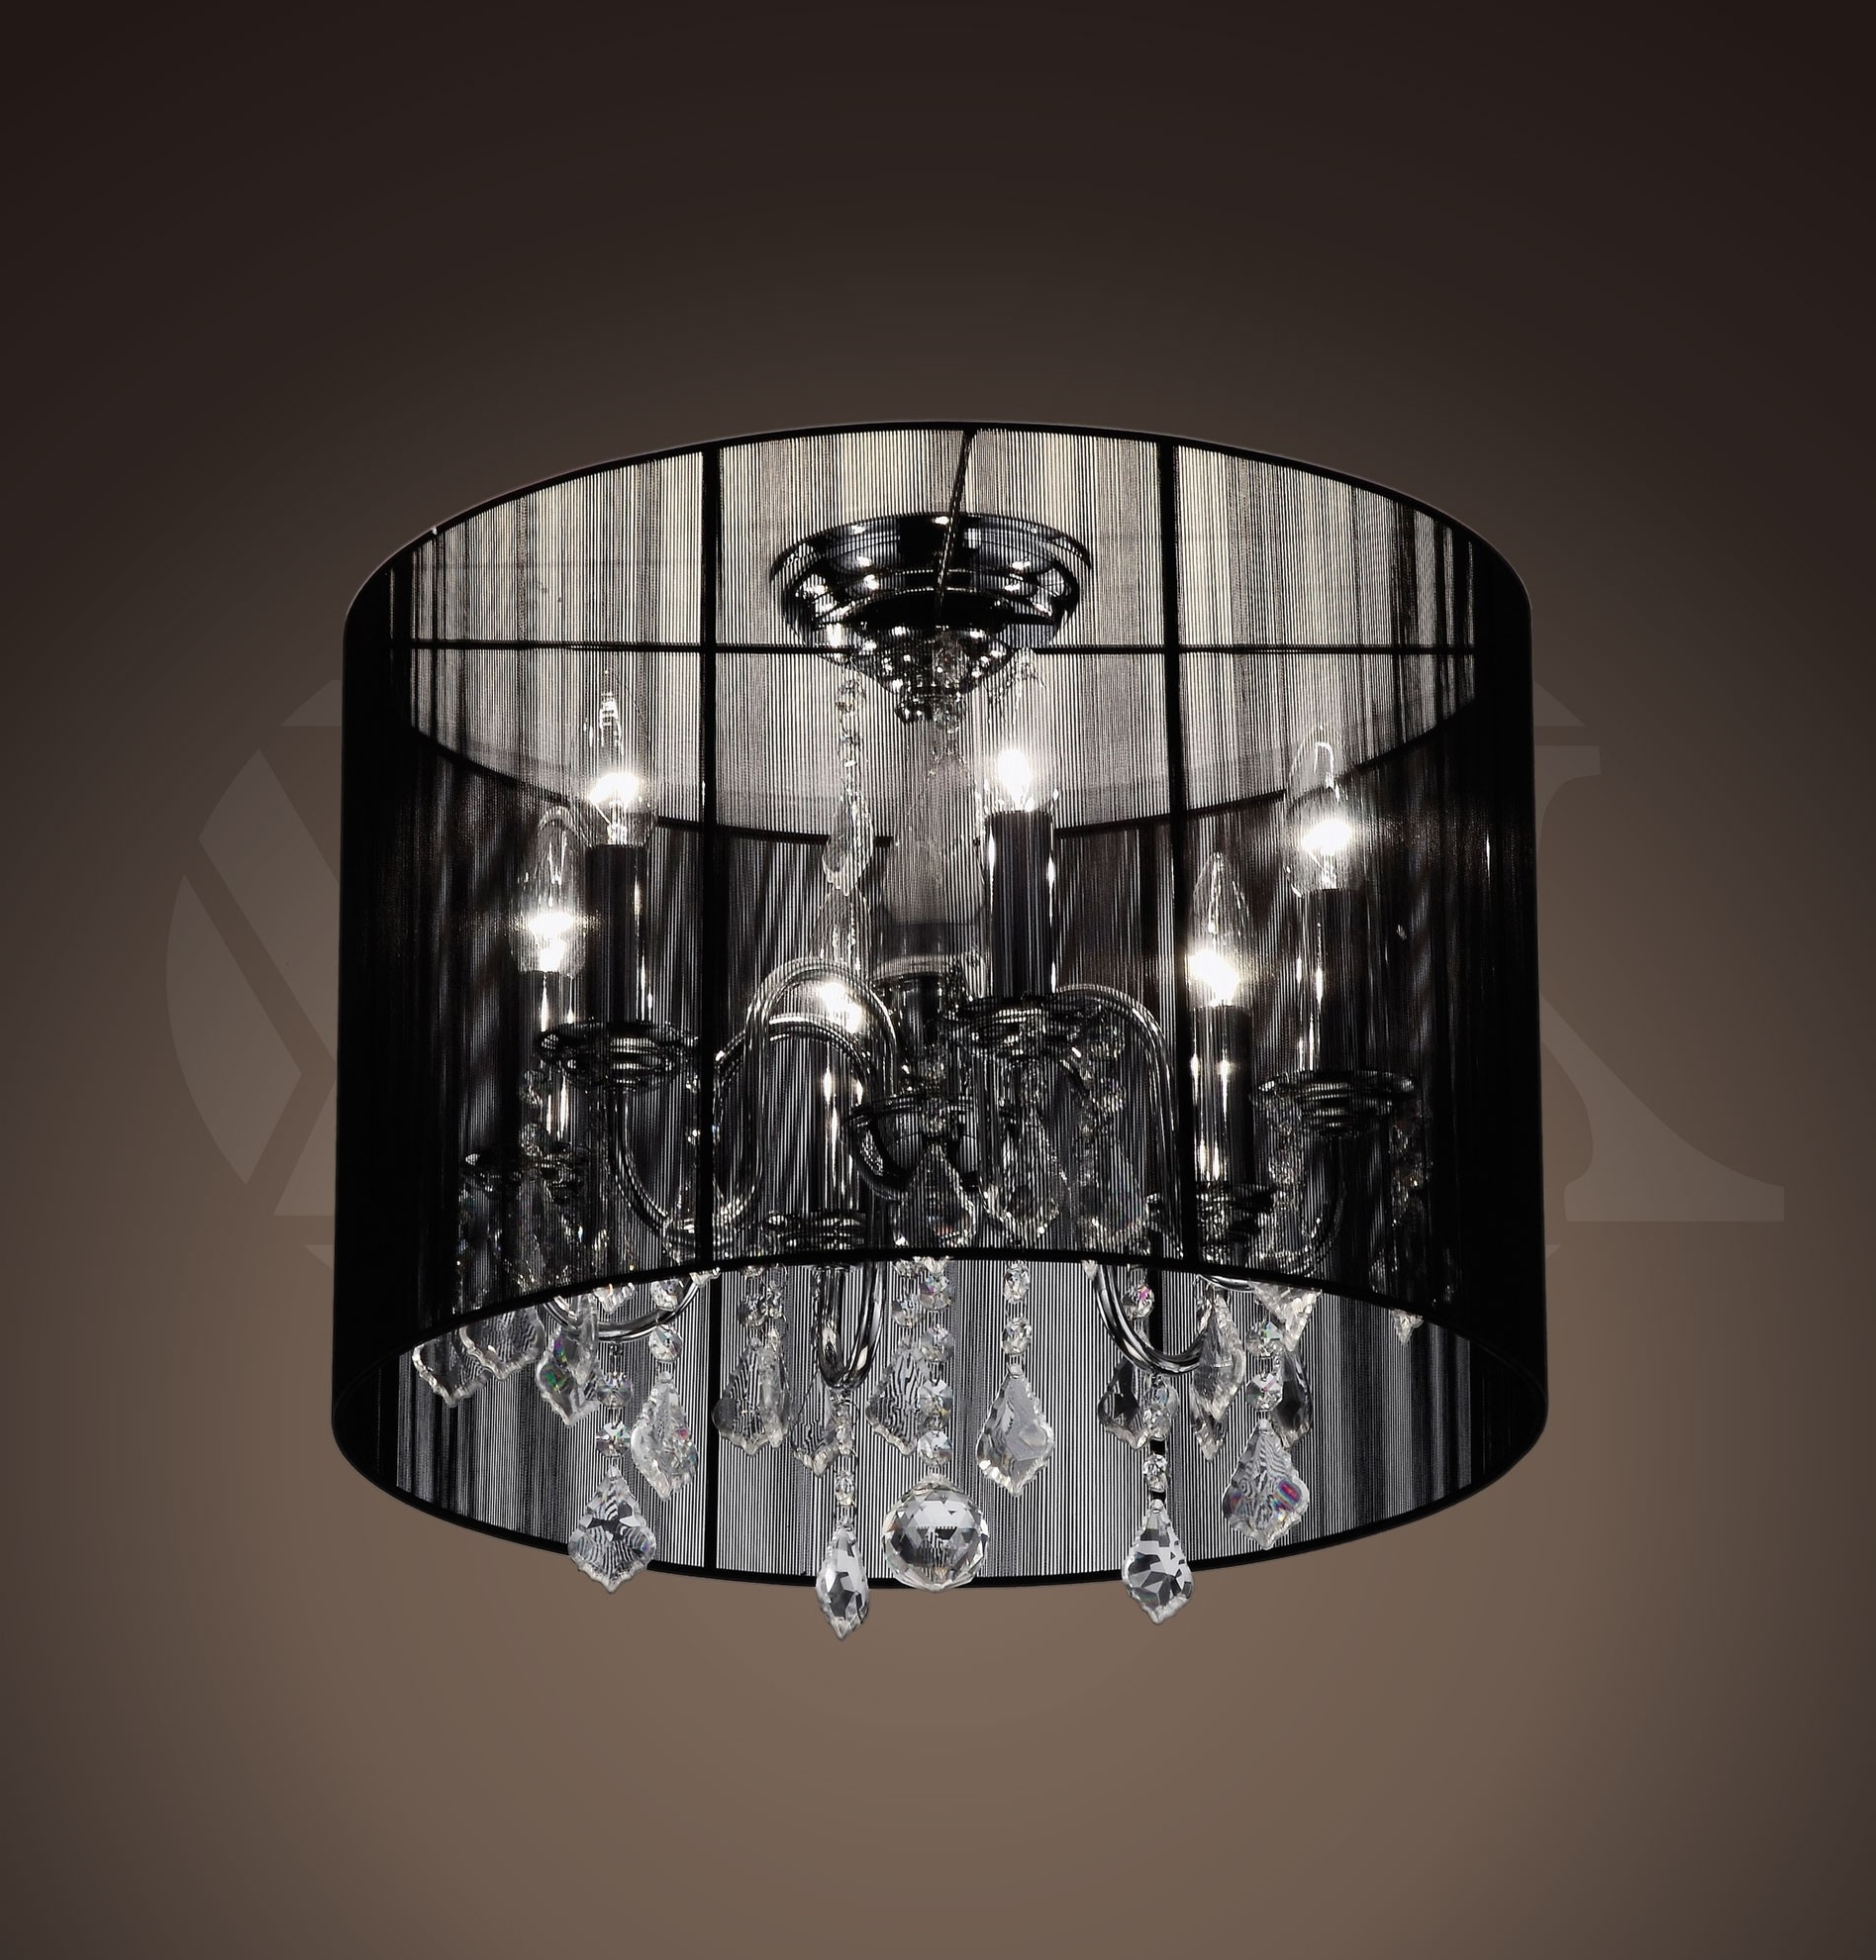 Simple Glass Chandelier Regarding Most Recent Chandeliers : Glass Chandelier Shades Fresh Chandeliers Small Black (View 11 of 15)